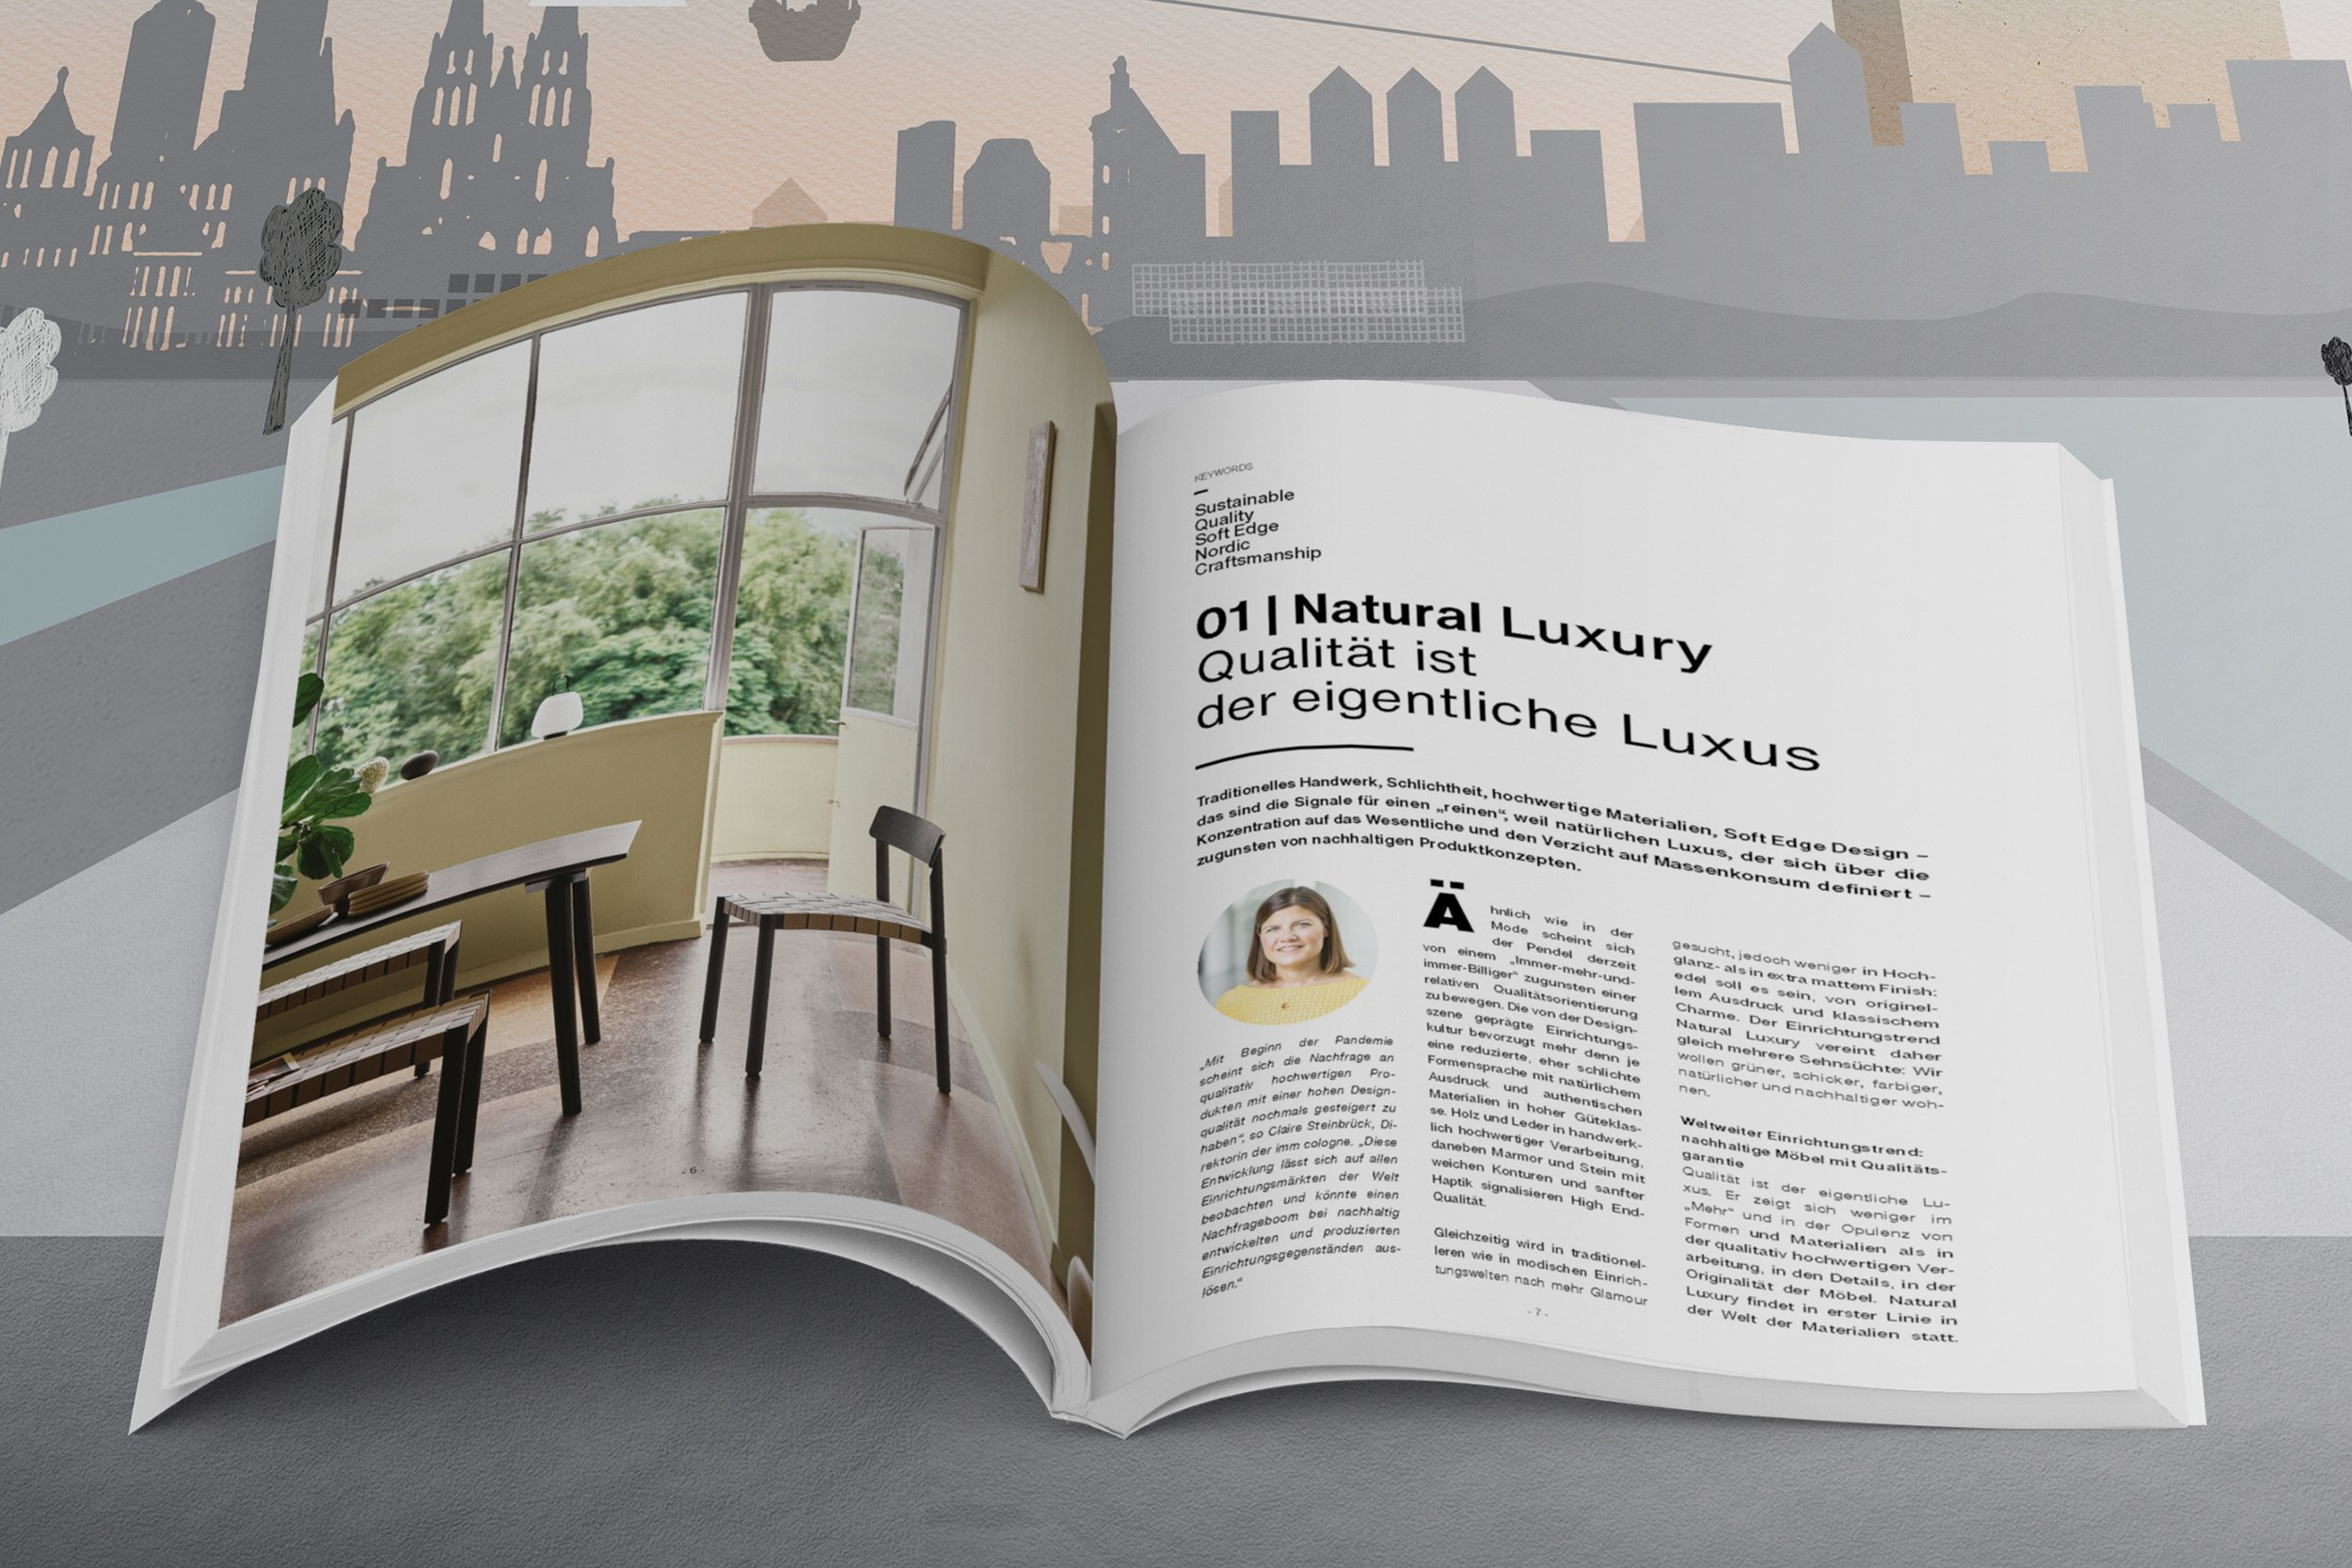 https://farconsulting.de/wp-content/uploads/2021/02/02_Natural-Living_Trend-Briefing.jpg